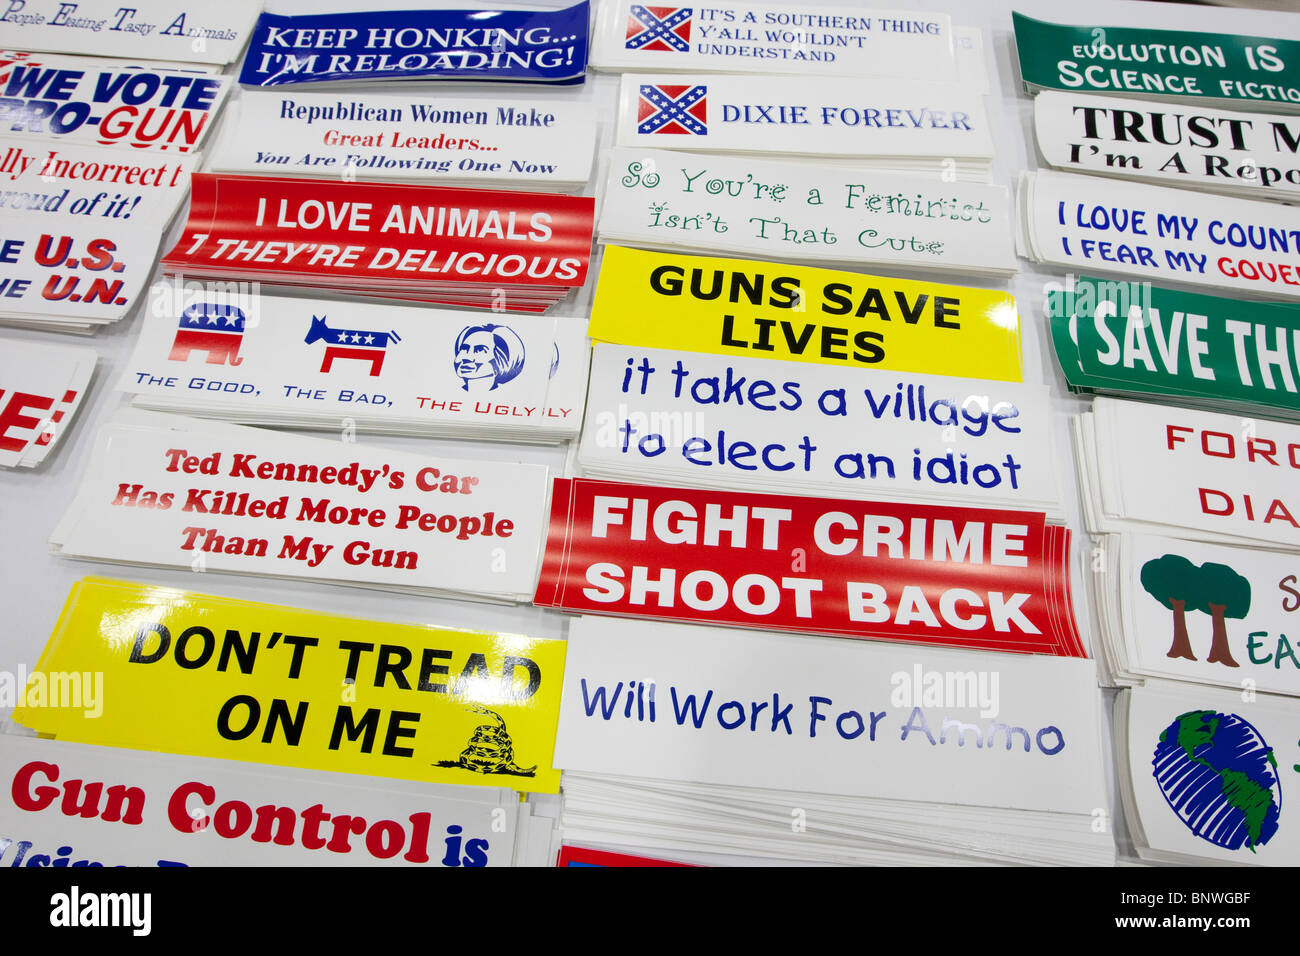 Bumper sticker design ideas - Bumper Stickers Showing Conservative Political Ideas On Display At The Trade Show At The Texas Republican